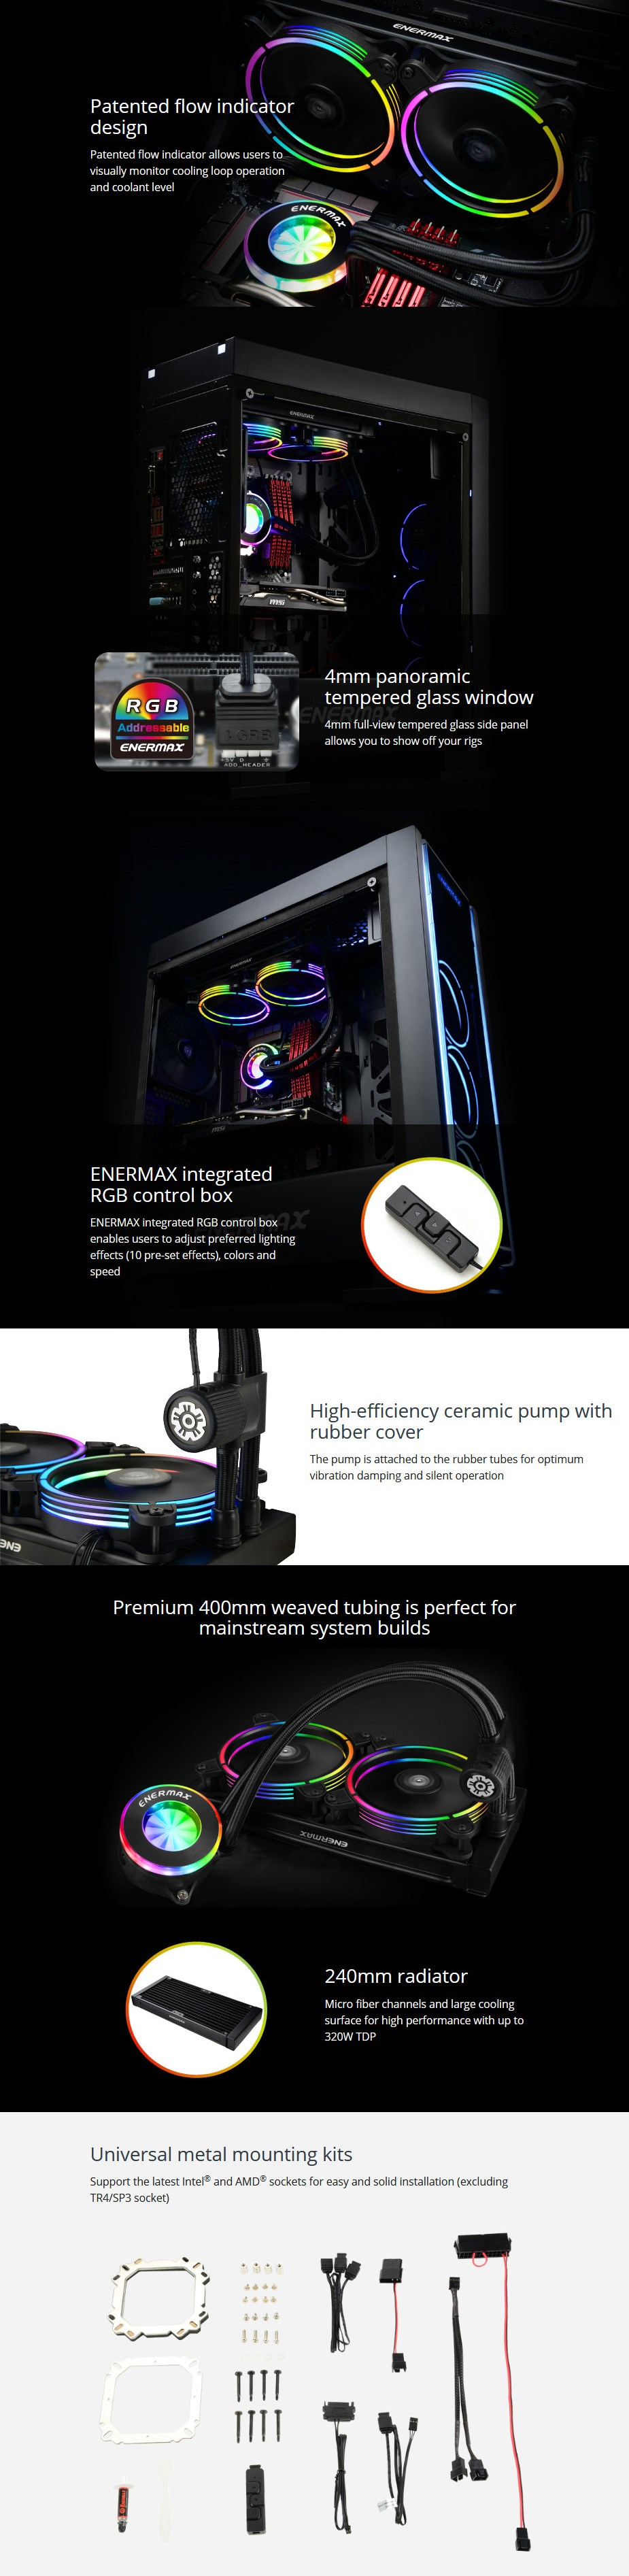 Enermax LIQFUSION 240 RGB Liquid CPU Cooler - Overview 1